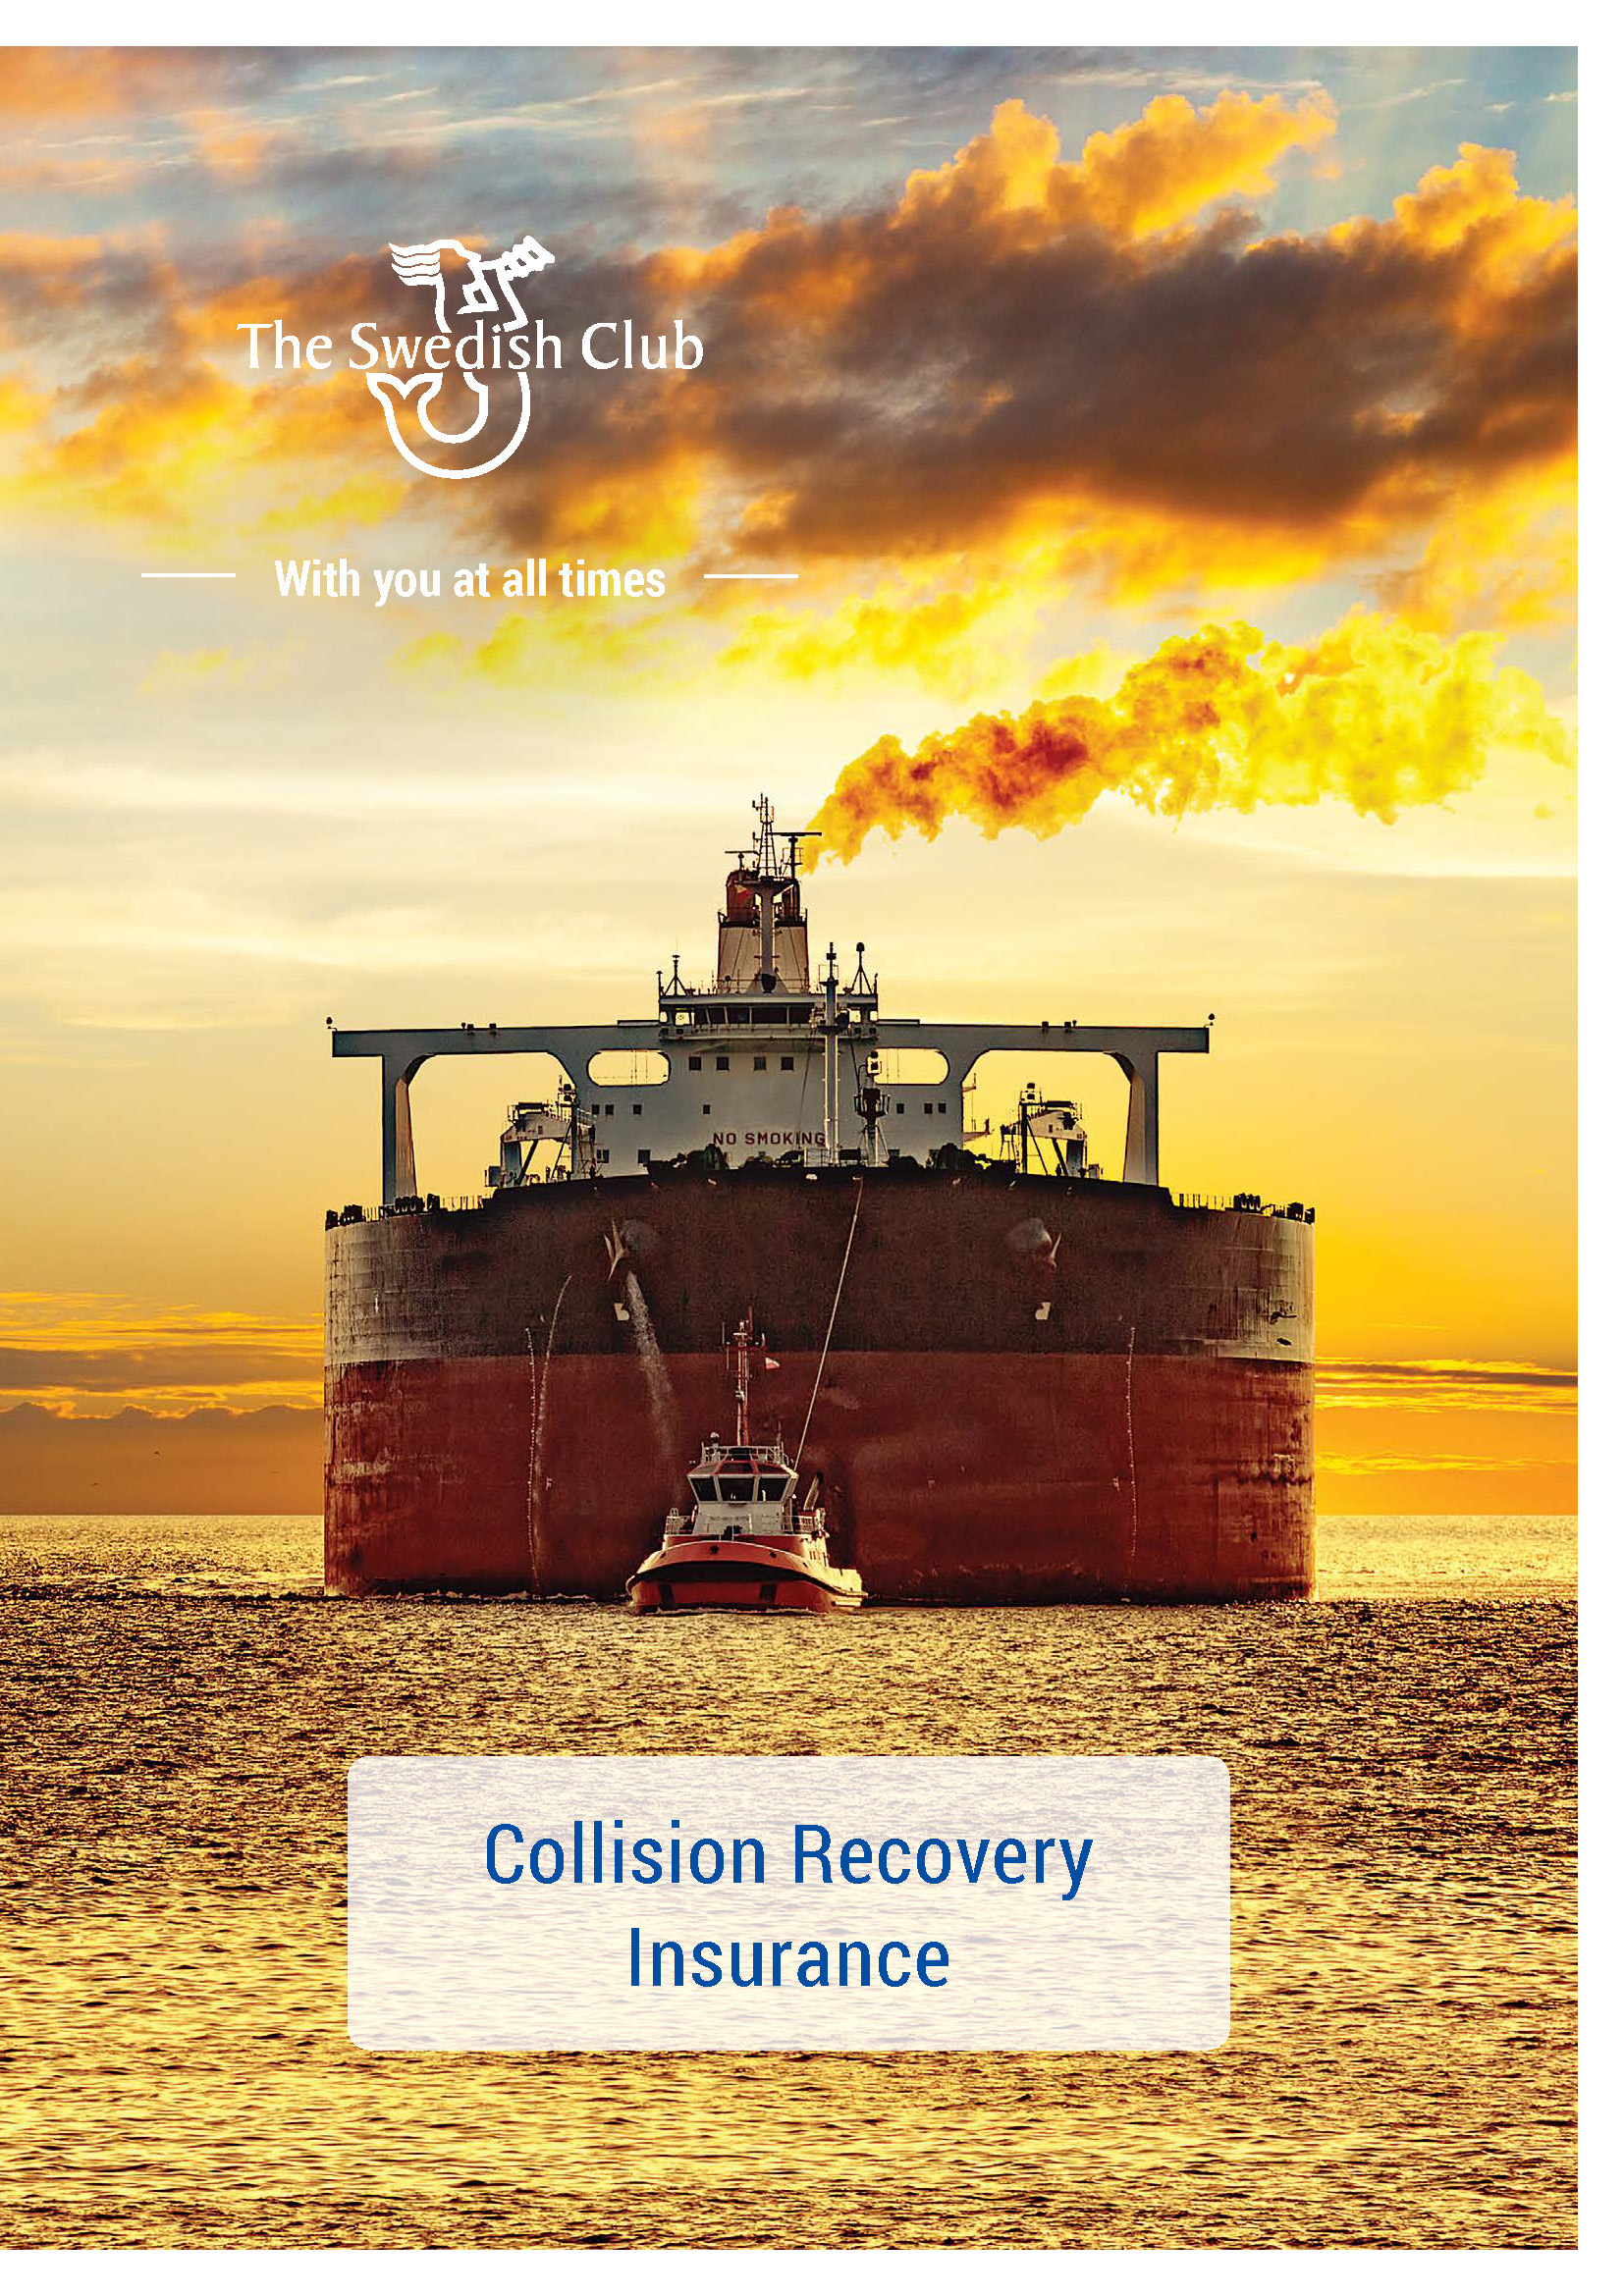 The Swedish Club Collision Recovery Insurance